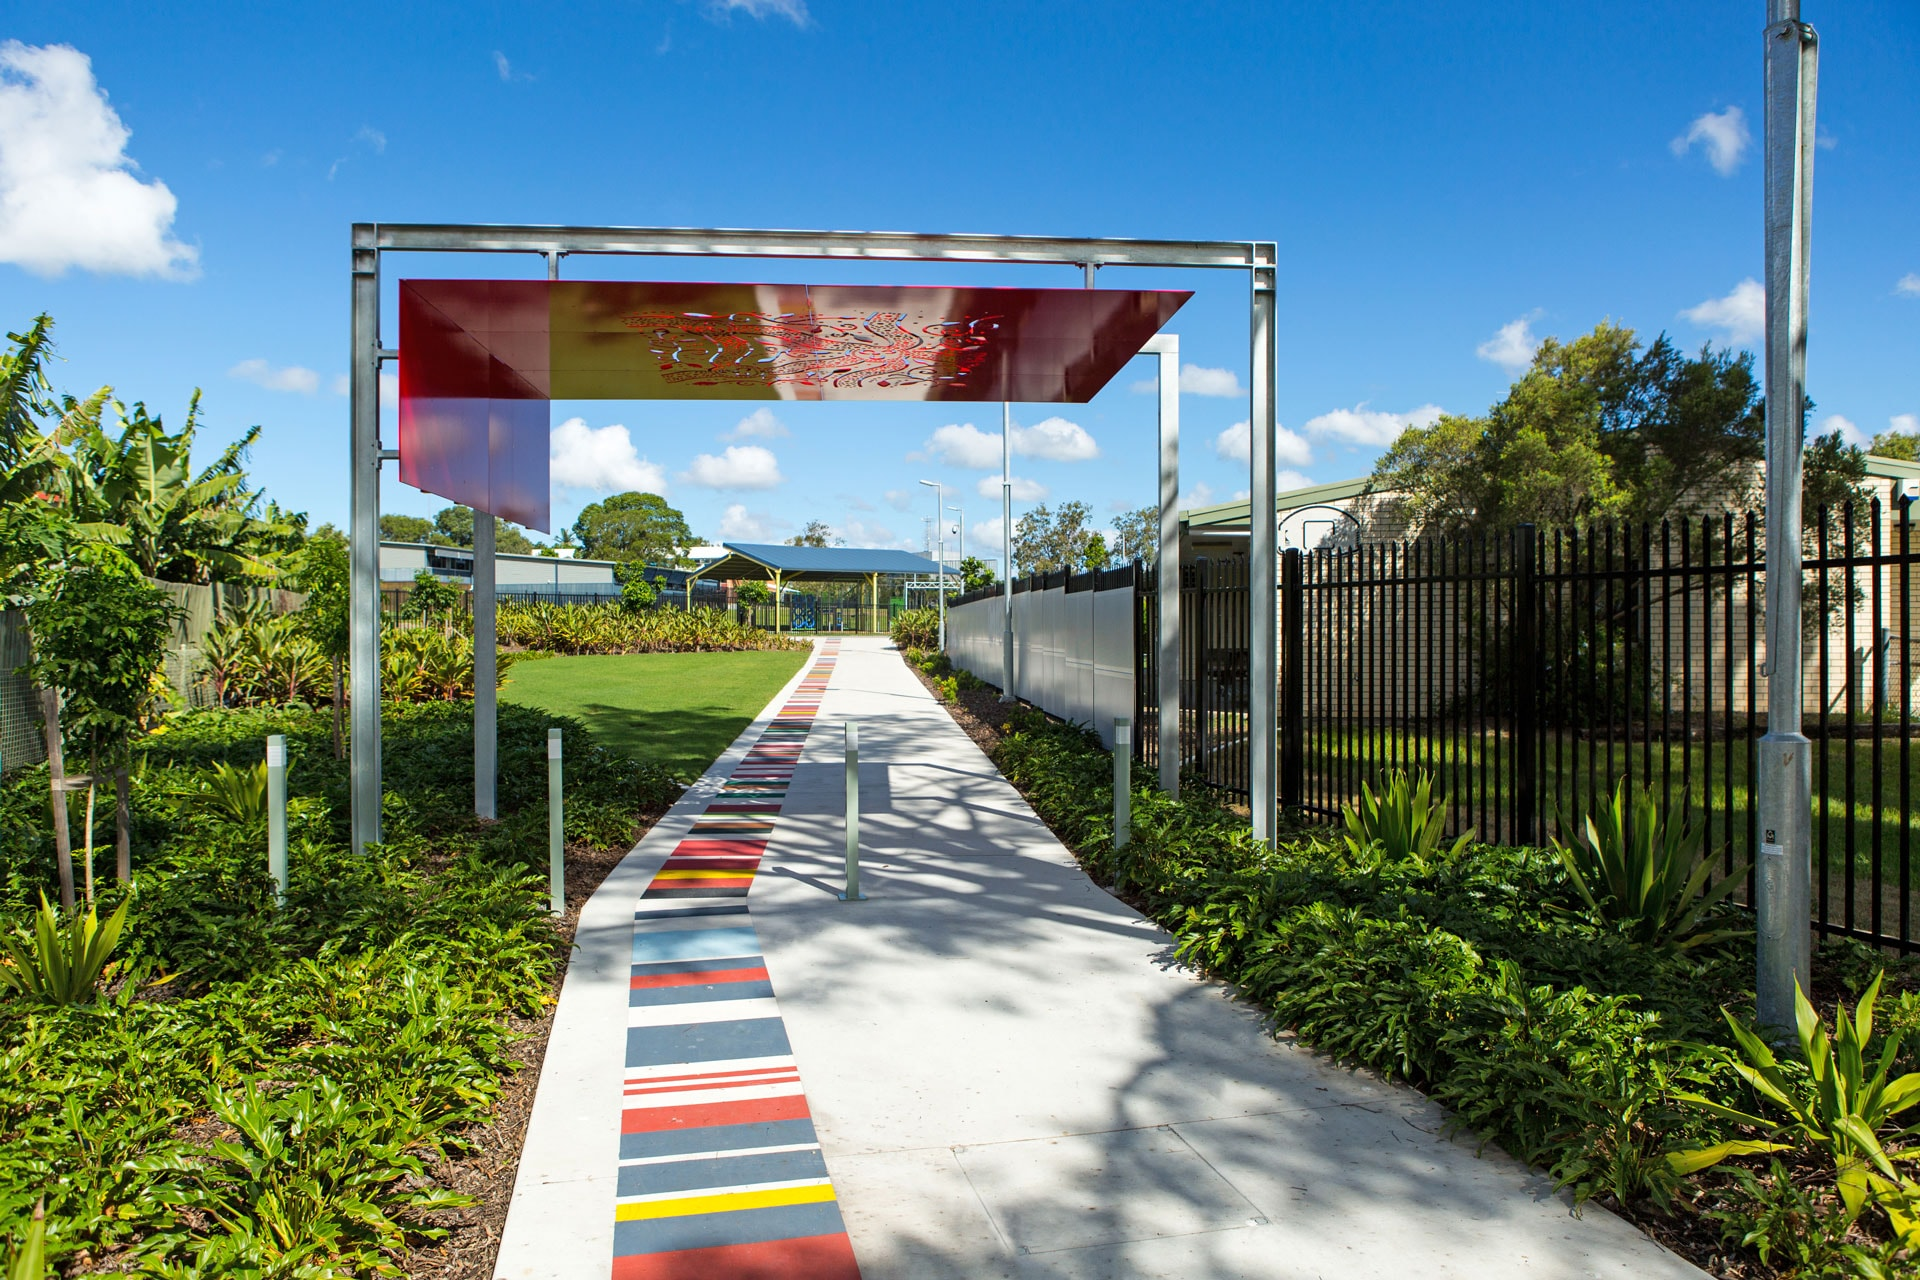 Wembley-connection-pathway-LCC-image-3.jpg